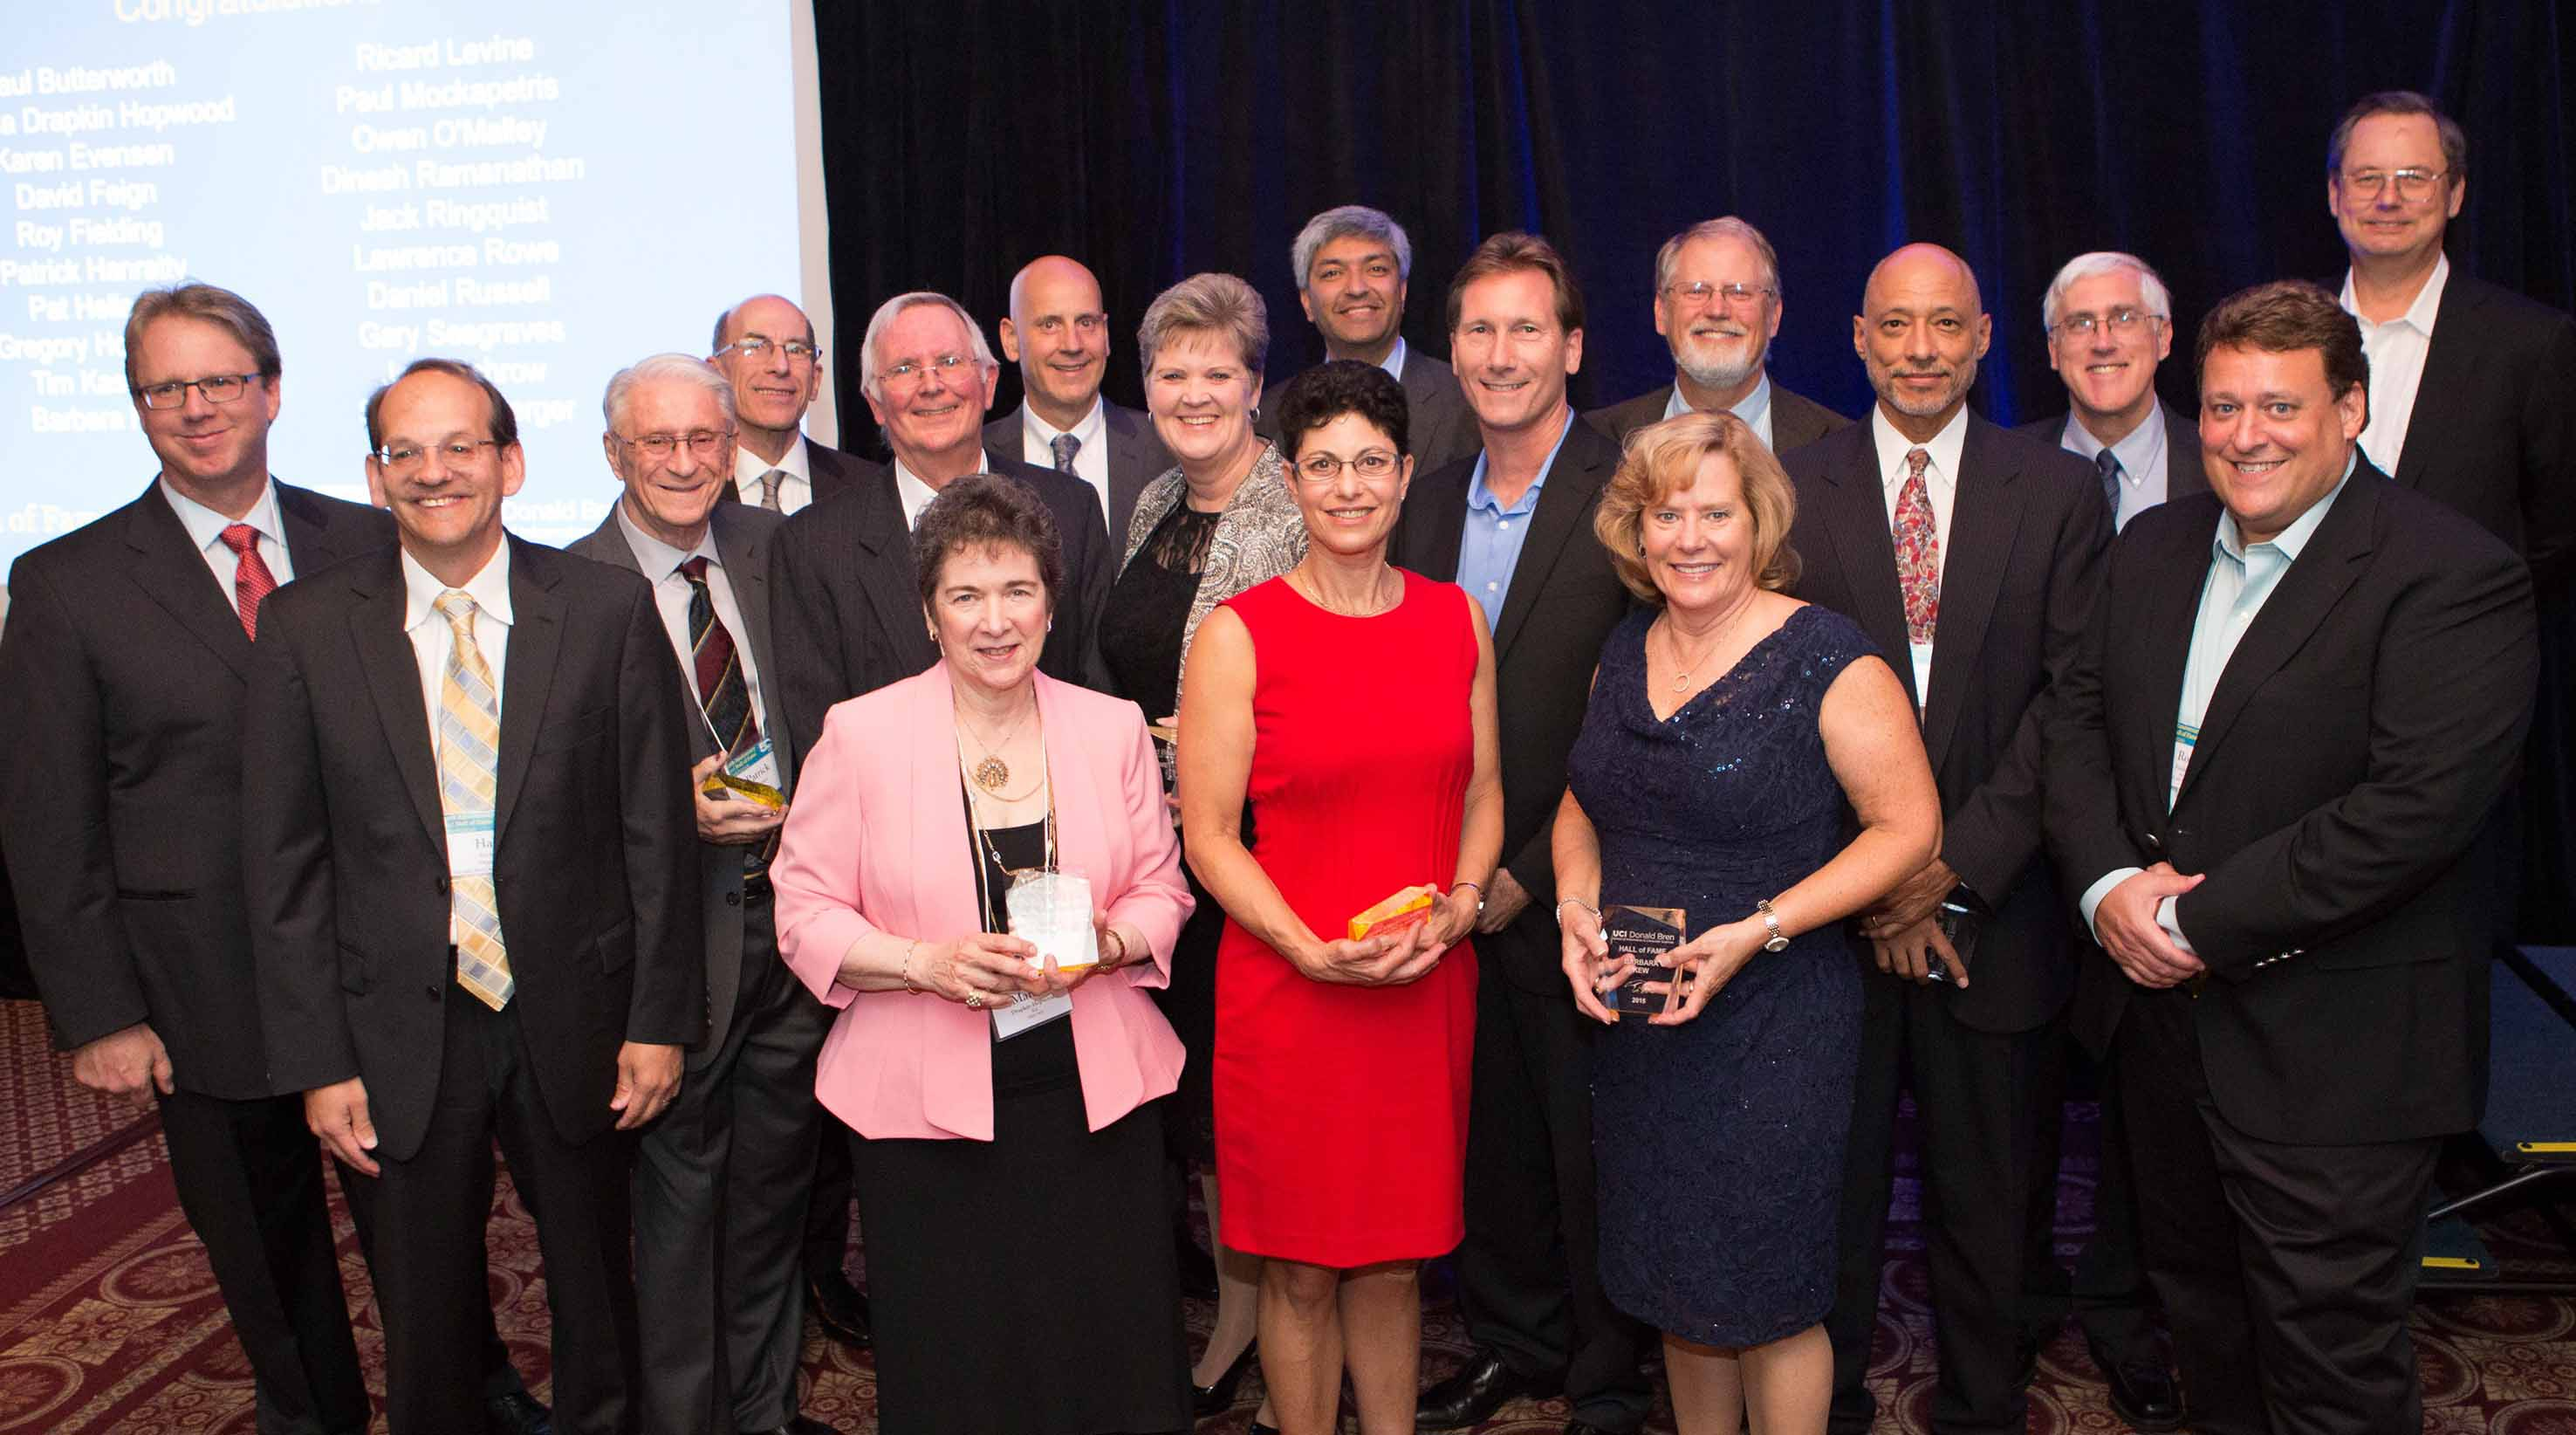 ICS 2015 Hall of Fame inductees. Owen O'Malley far left; Roy T. Fielding far right, front. Photo by Eva Lempert.